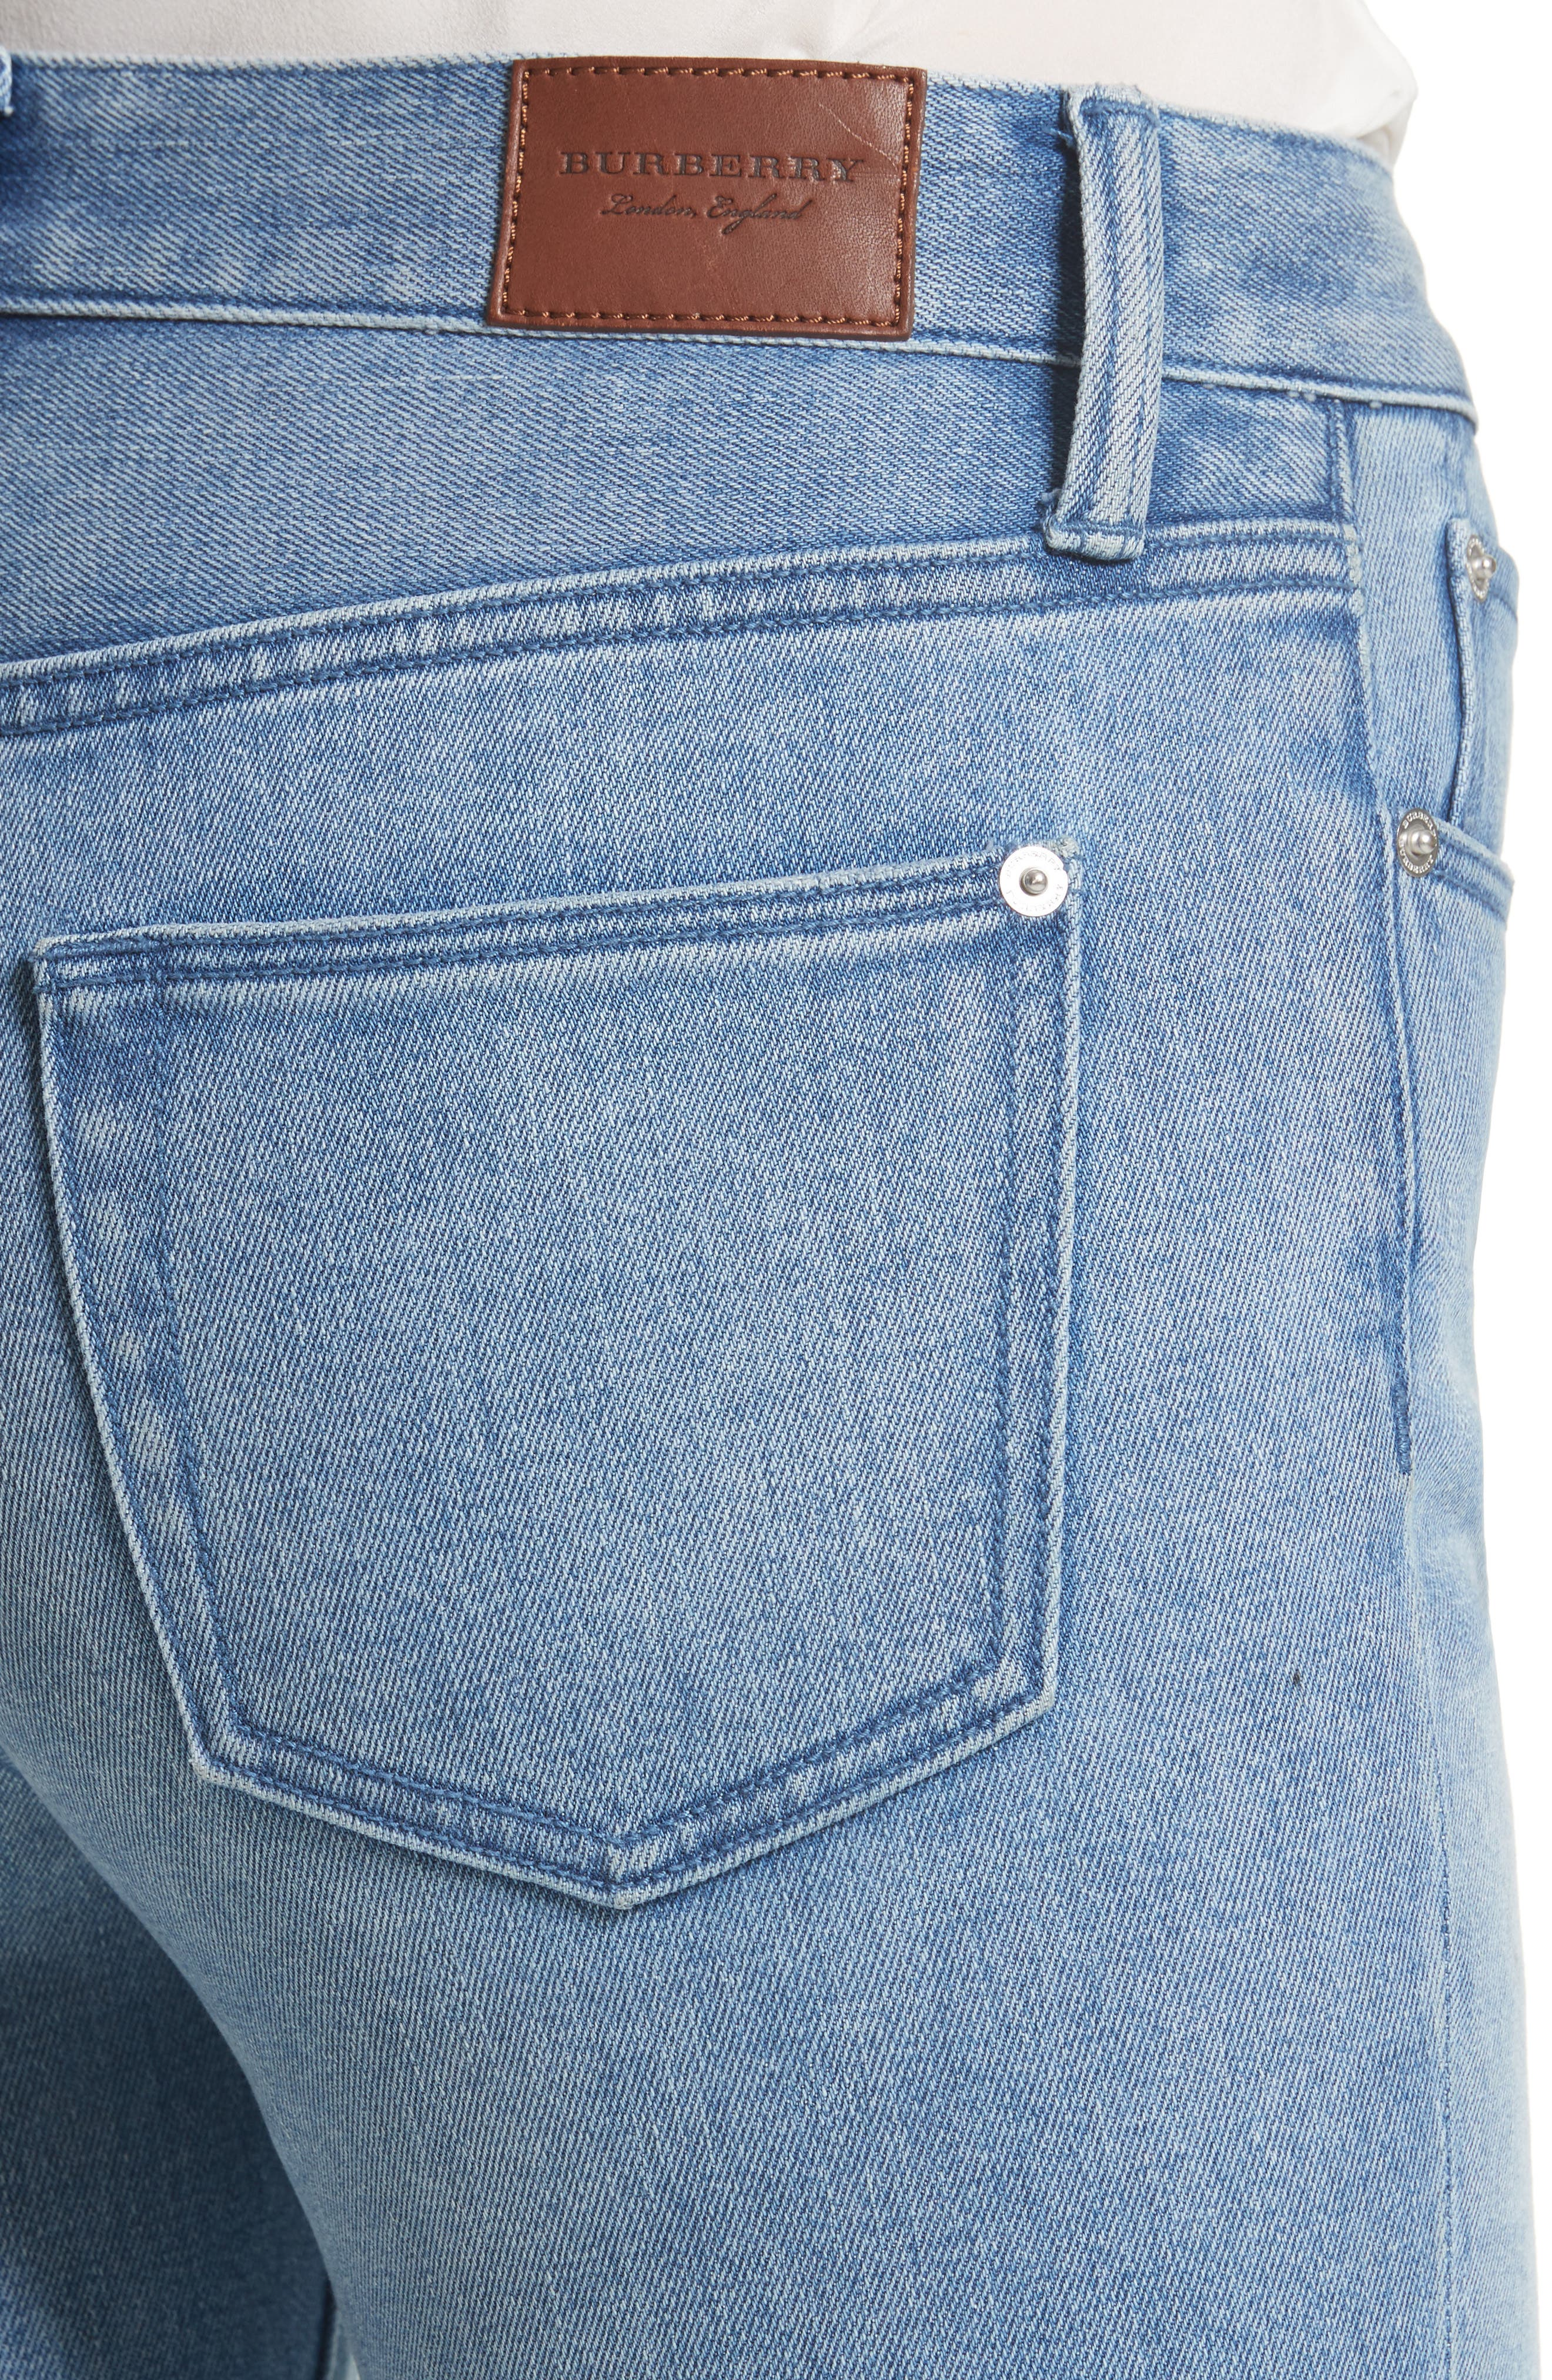 Relaxed Crop Jeans,                             Alternate thumbnail 4, color,                             Pale Blue